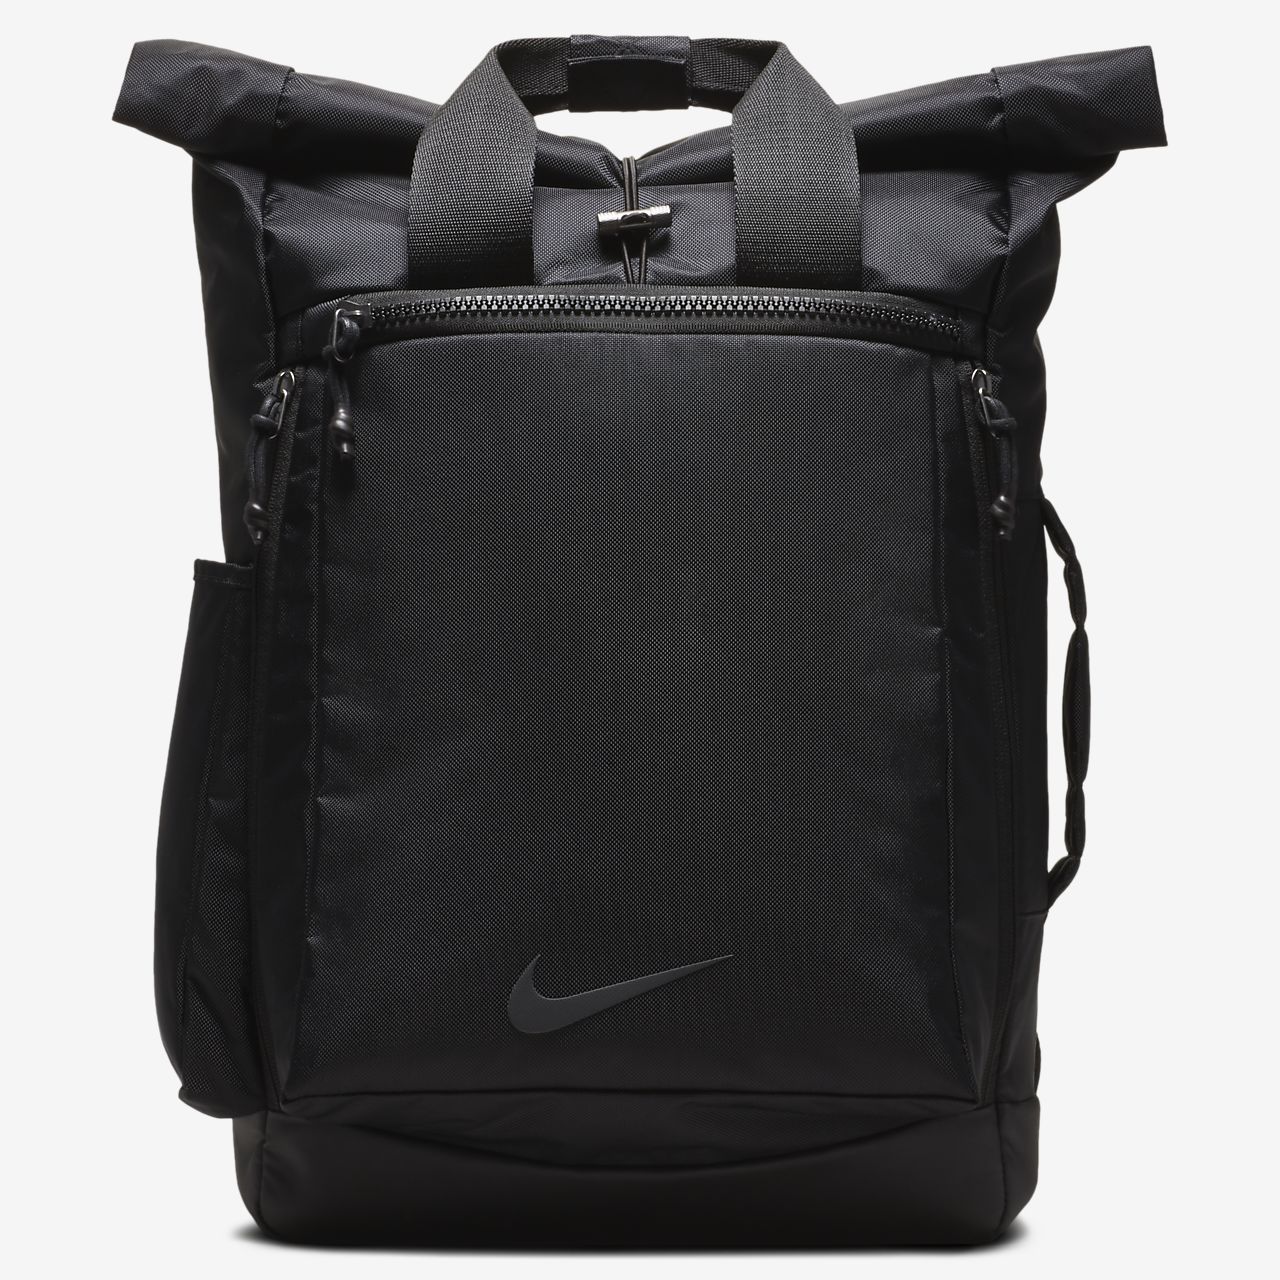 f5266eabfc4a2 Nike Vapor Energy 2.0 Training Backpack. Nike.com GB